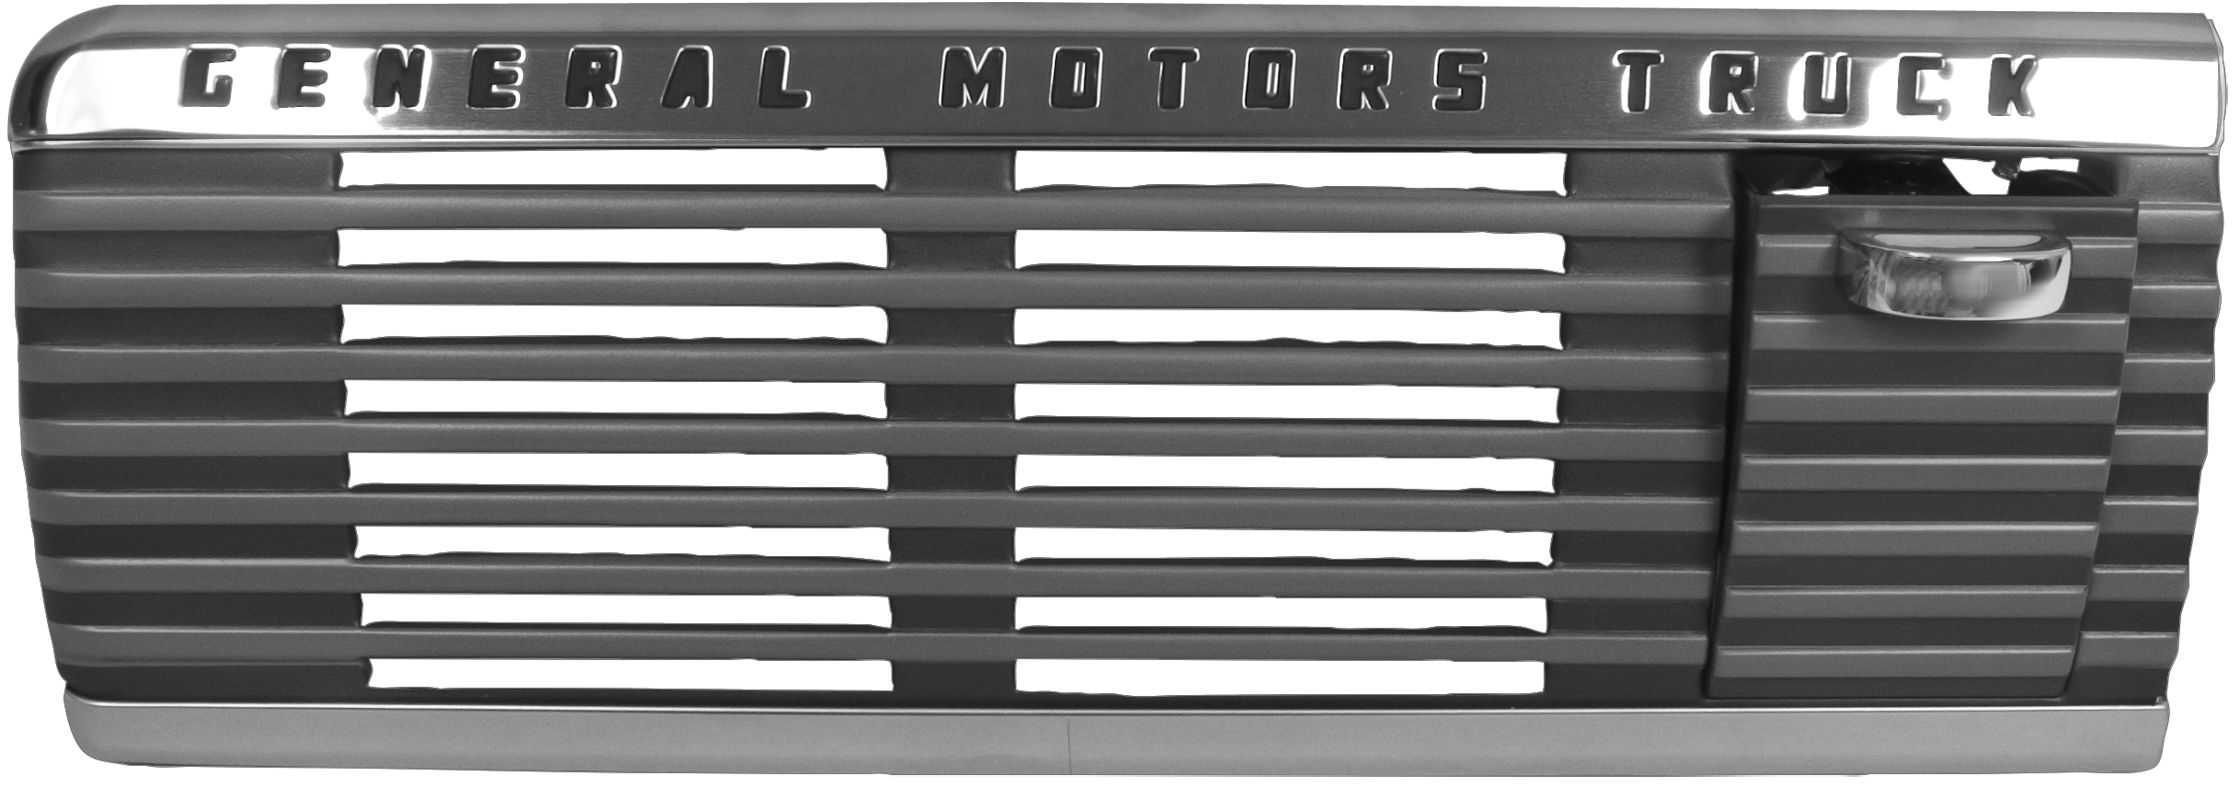 1947-53 GMC dash speaker grille w/ashtray